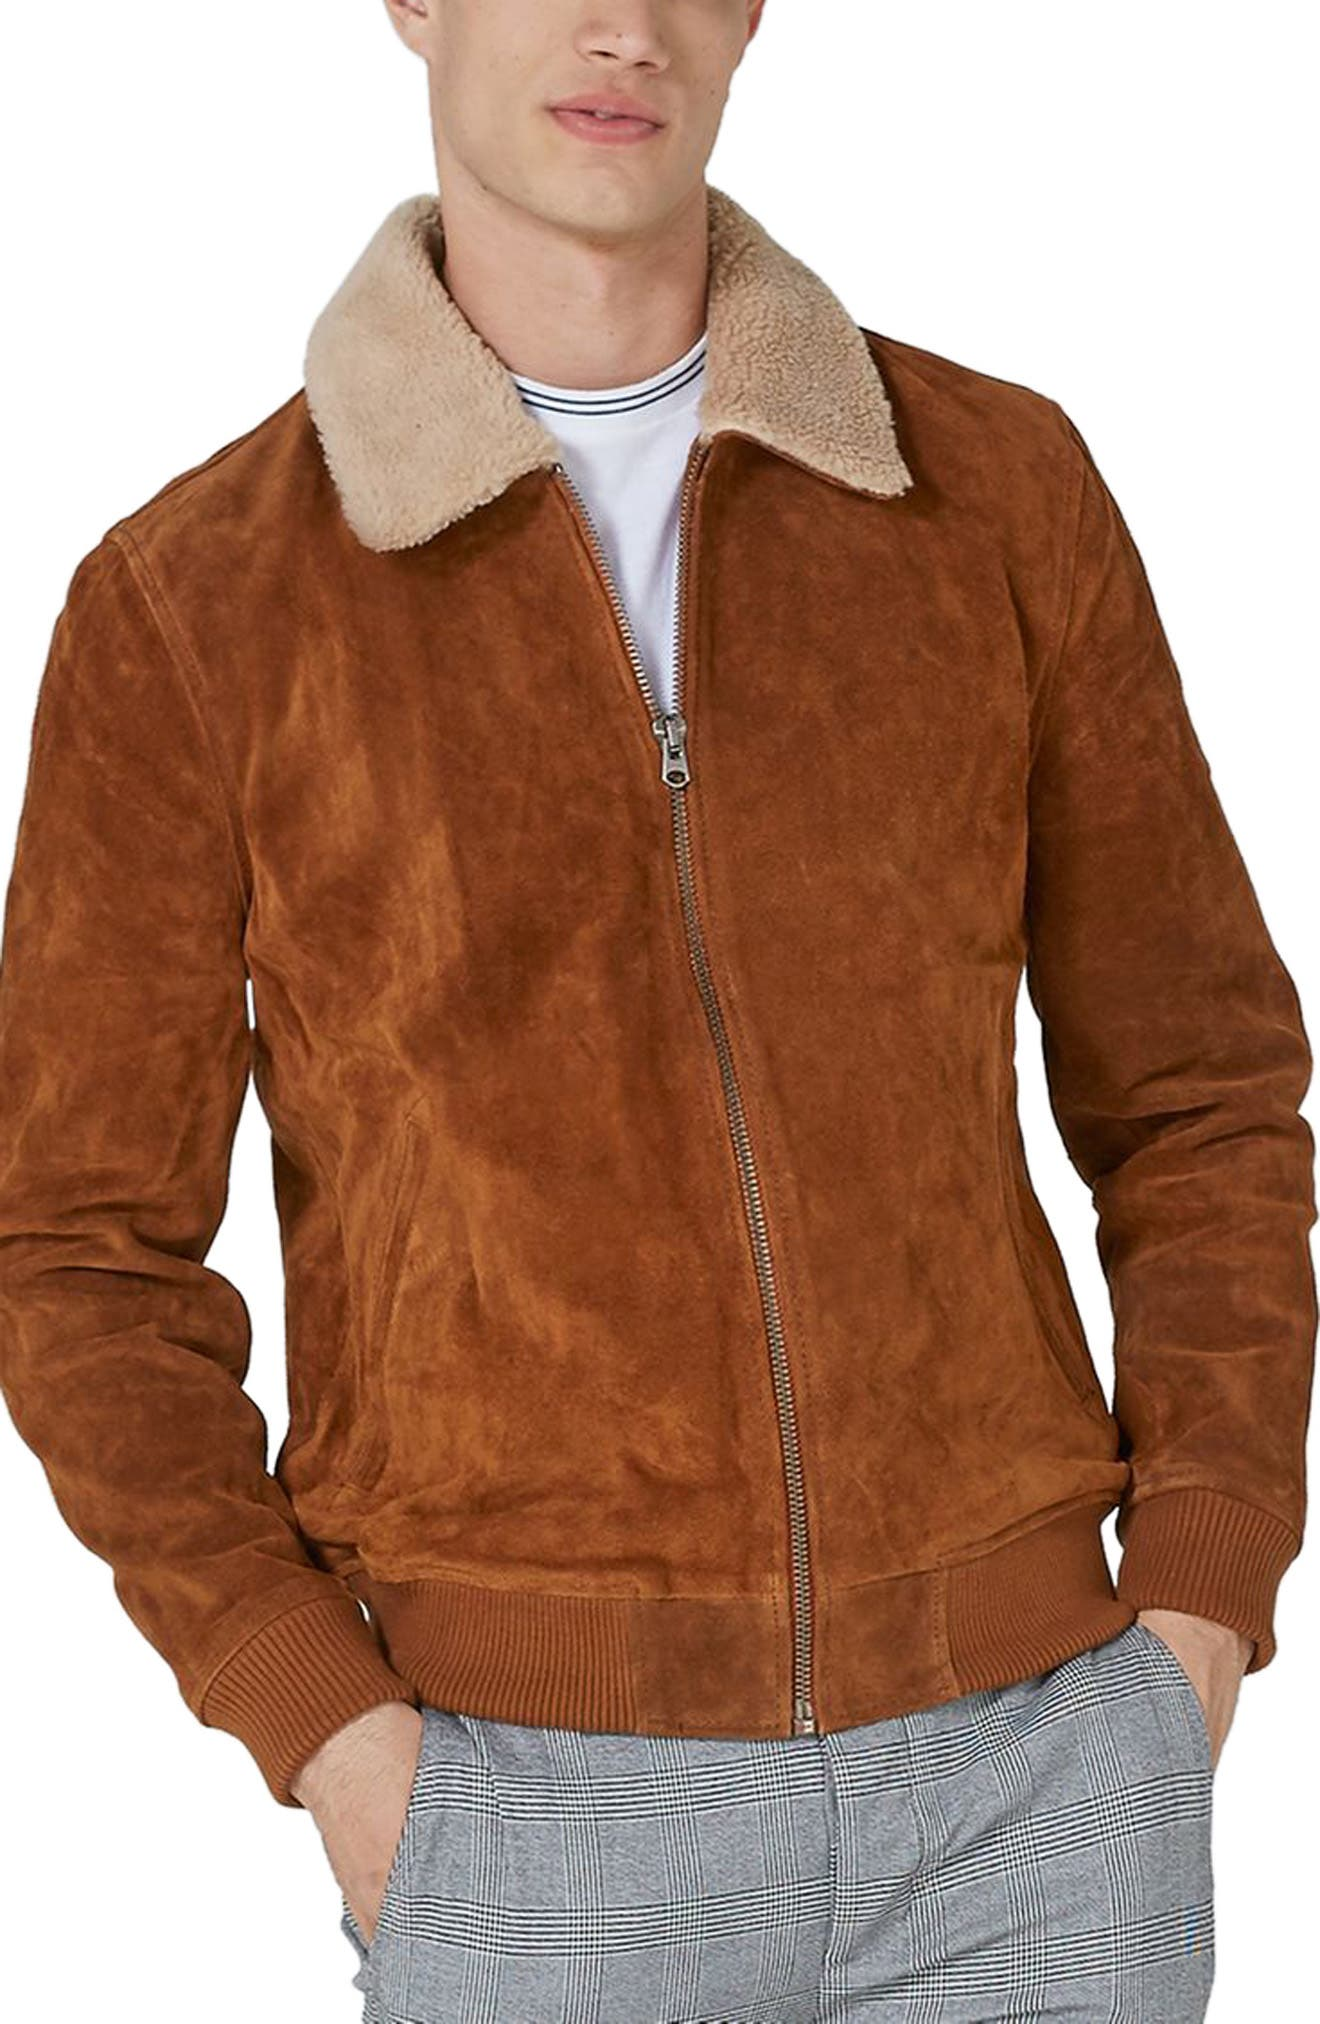 Borg Collar Suede Jacket,                             Main thumbnail 1, color,                             200